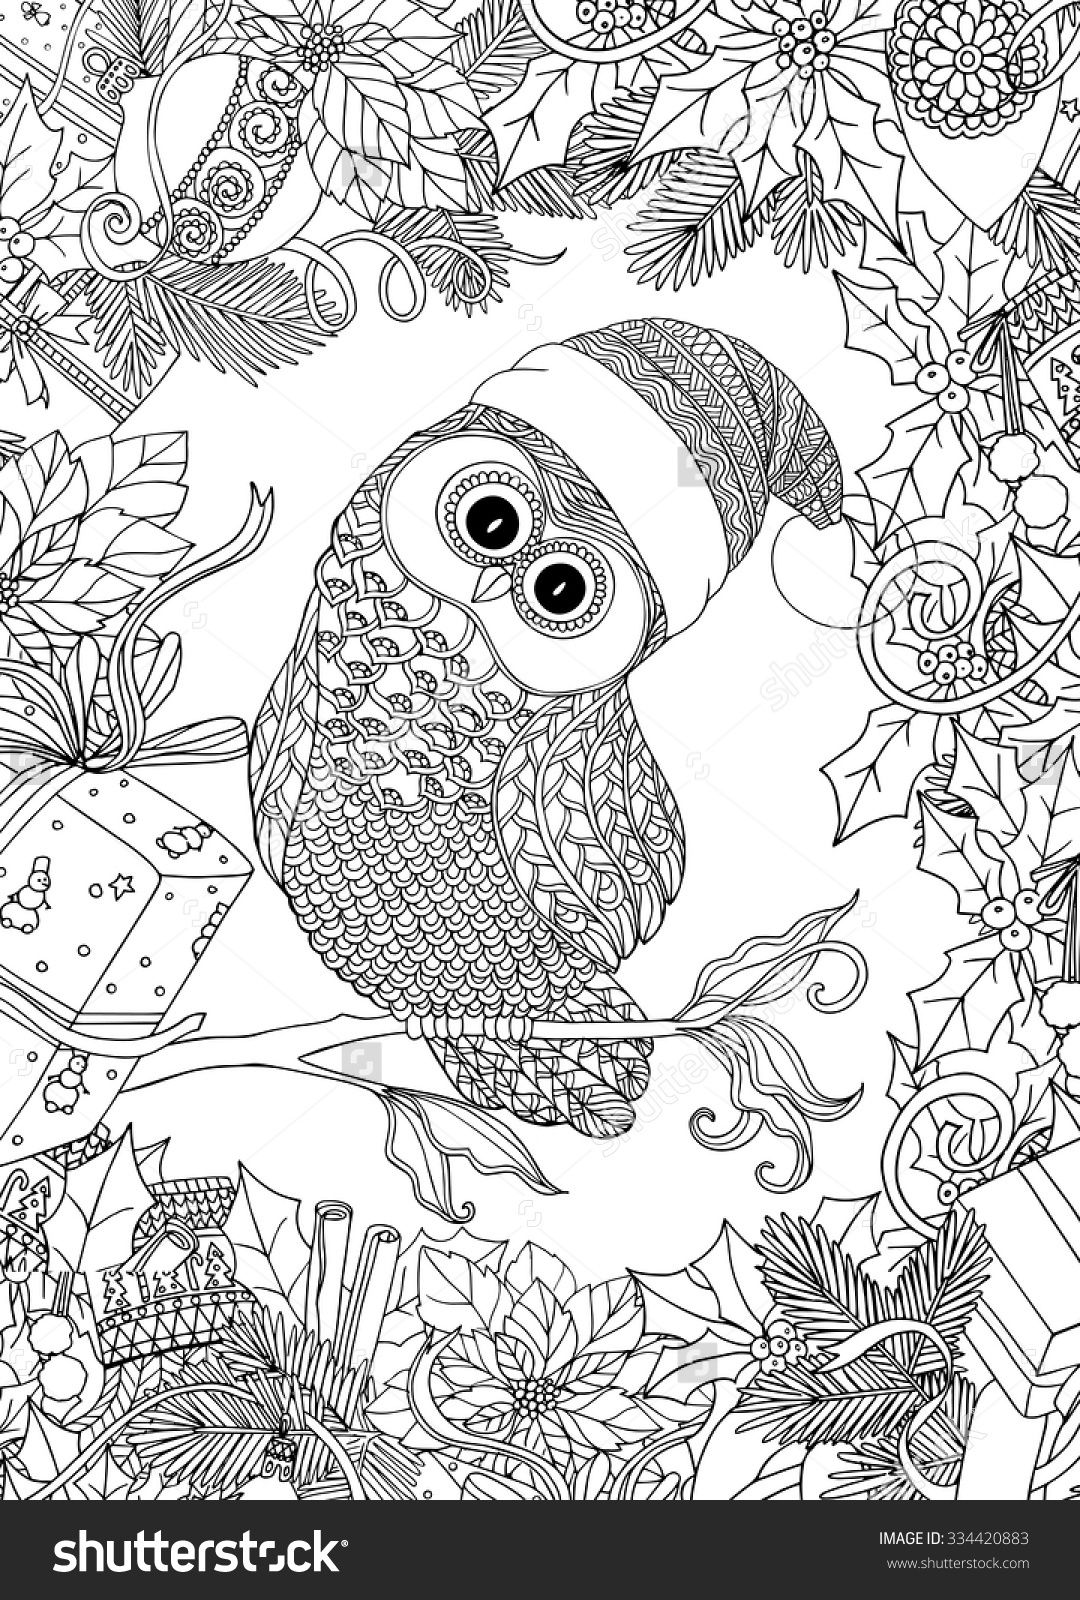 Christmas Coloring Book Vector With For Adult And Older Children Page